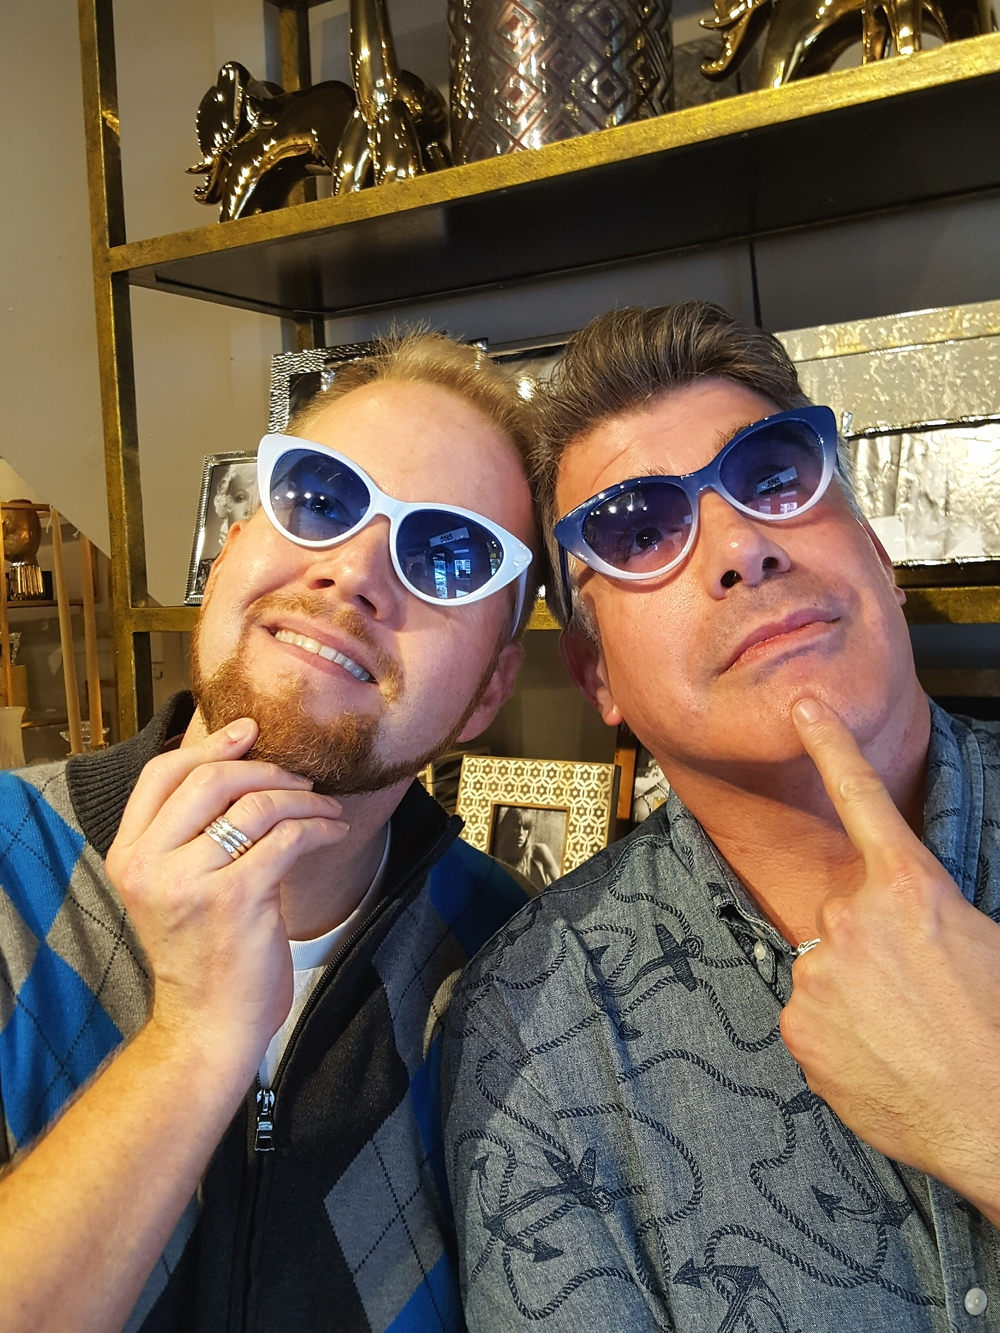 Michael Mackie and Bryan Batt finding things a little shady in New Orleans.